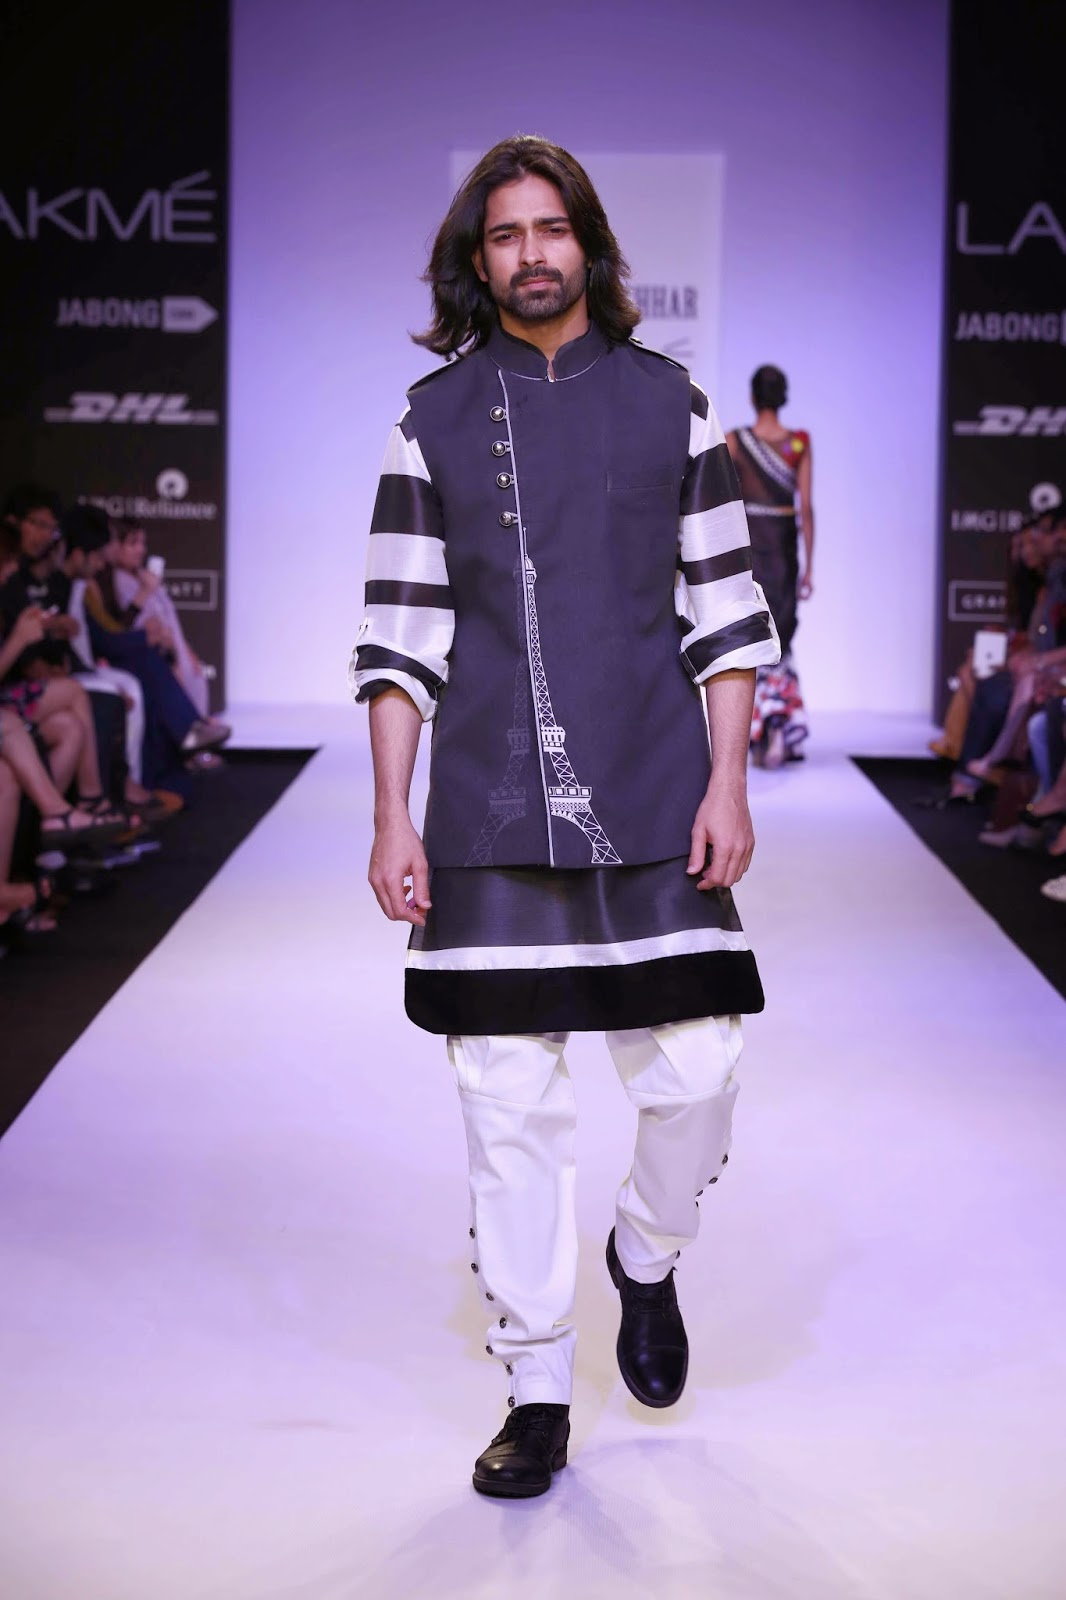 Men's wear worked well in black/white with ombré effects for kurtas, horizontal striped bundgalas, bundi with an Eiffel tower print, or asymmetric closures.